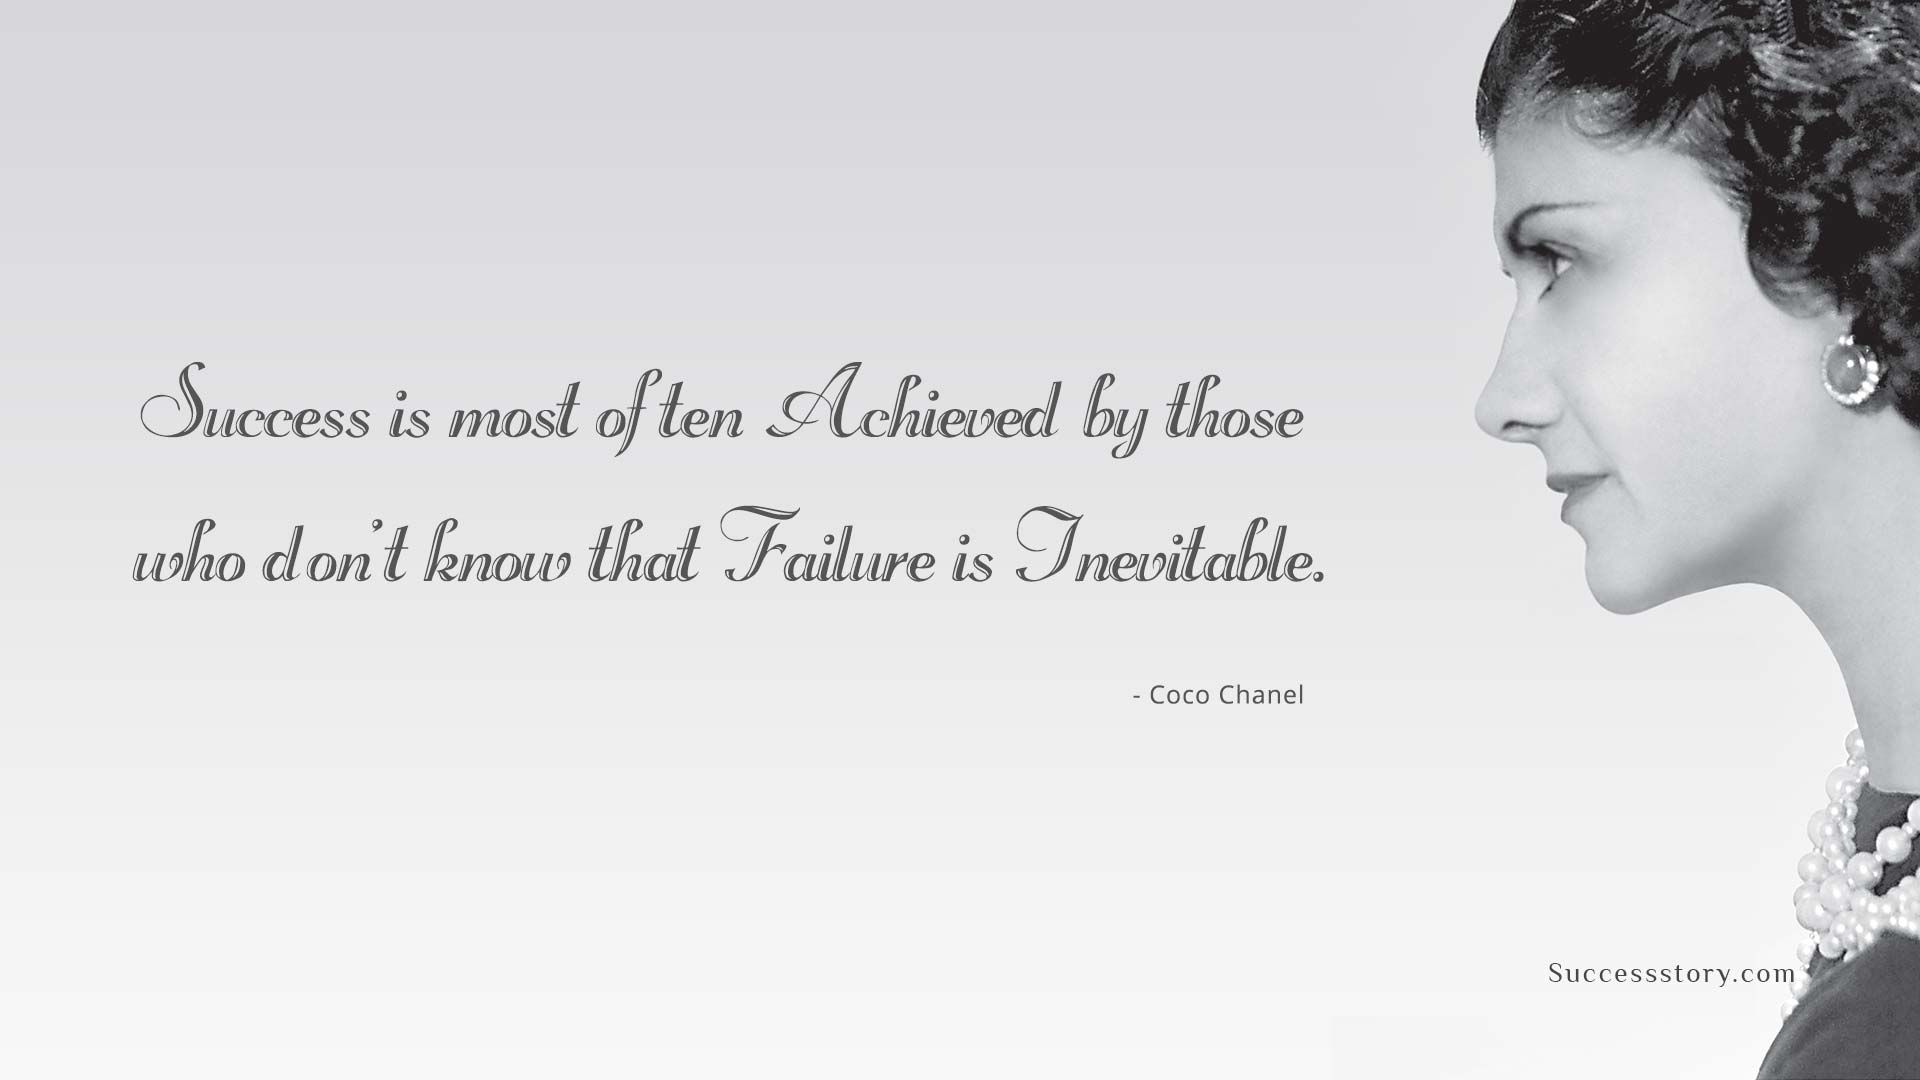 Failure is Inevitable | Famous quotes about success ...